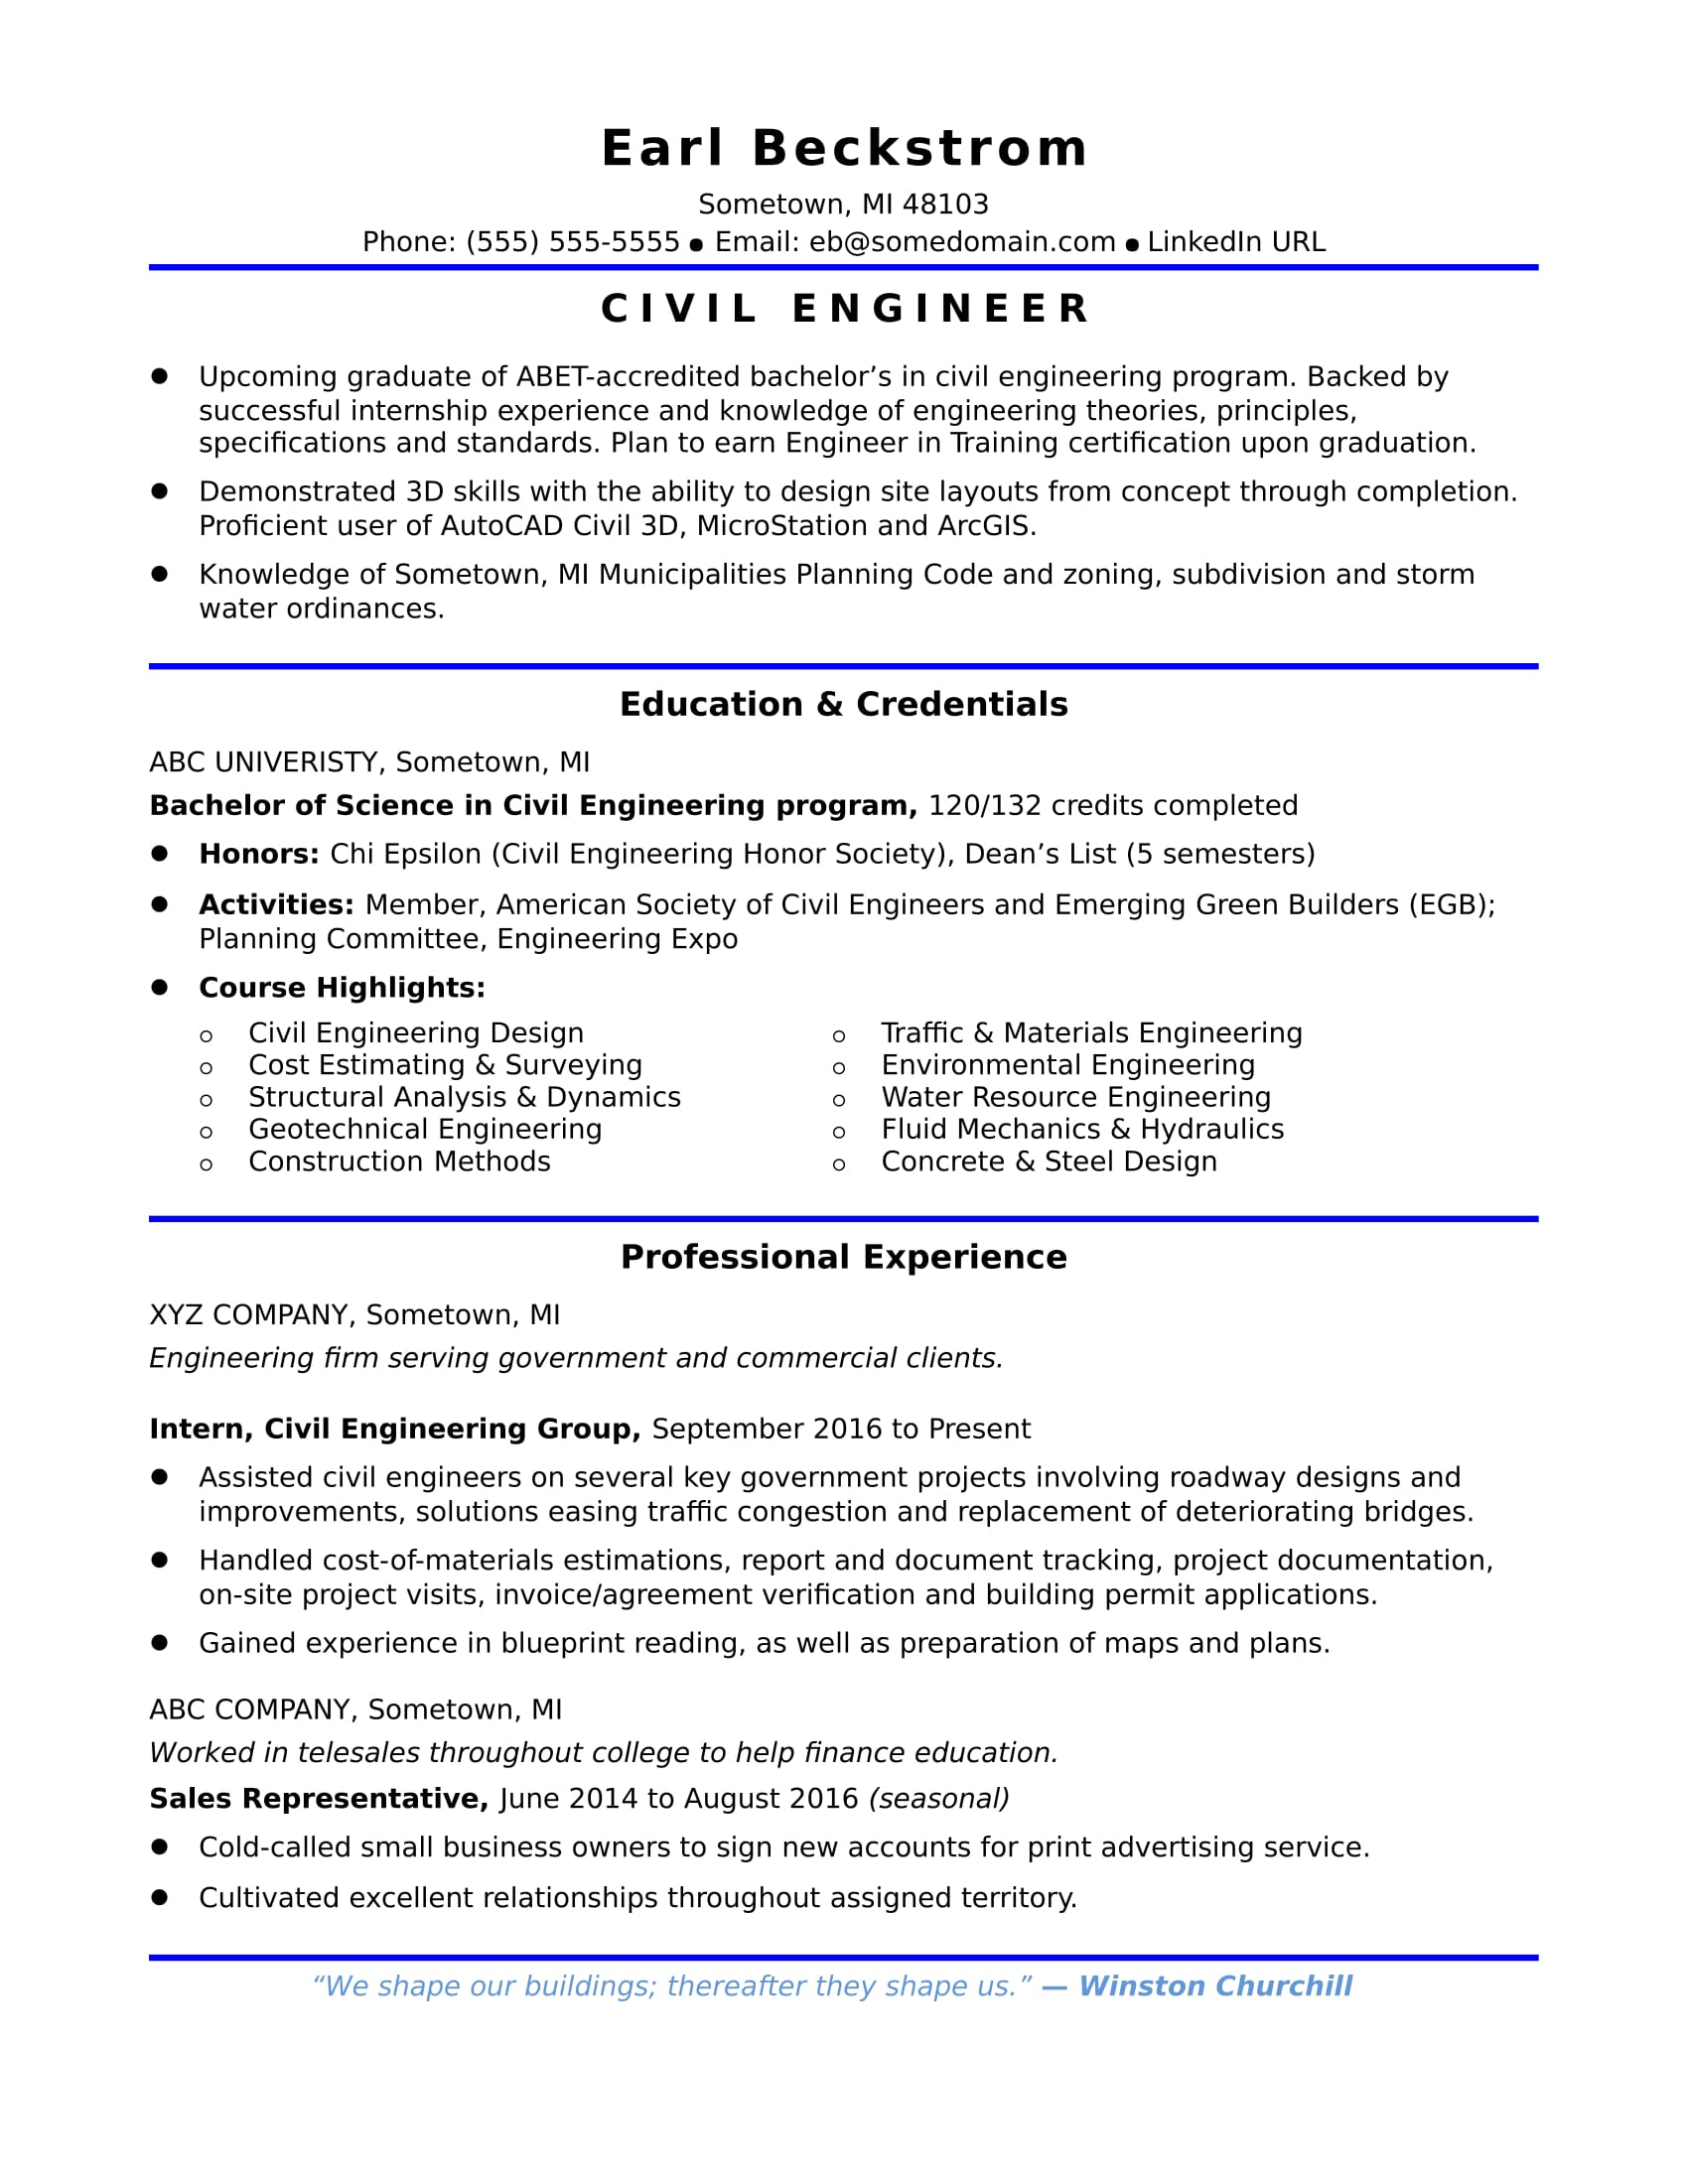 sample resume for an entry level civil engineer monster with ojt experience assessment Resume Resume With Ojt Experience